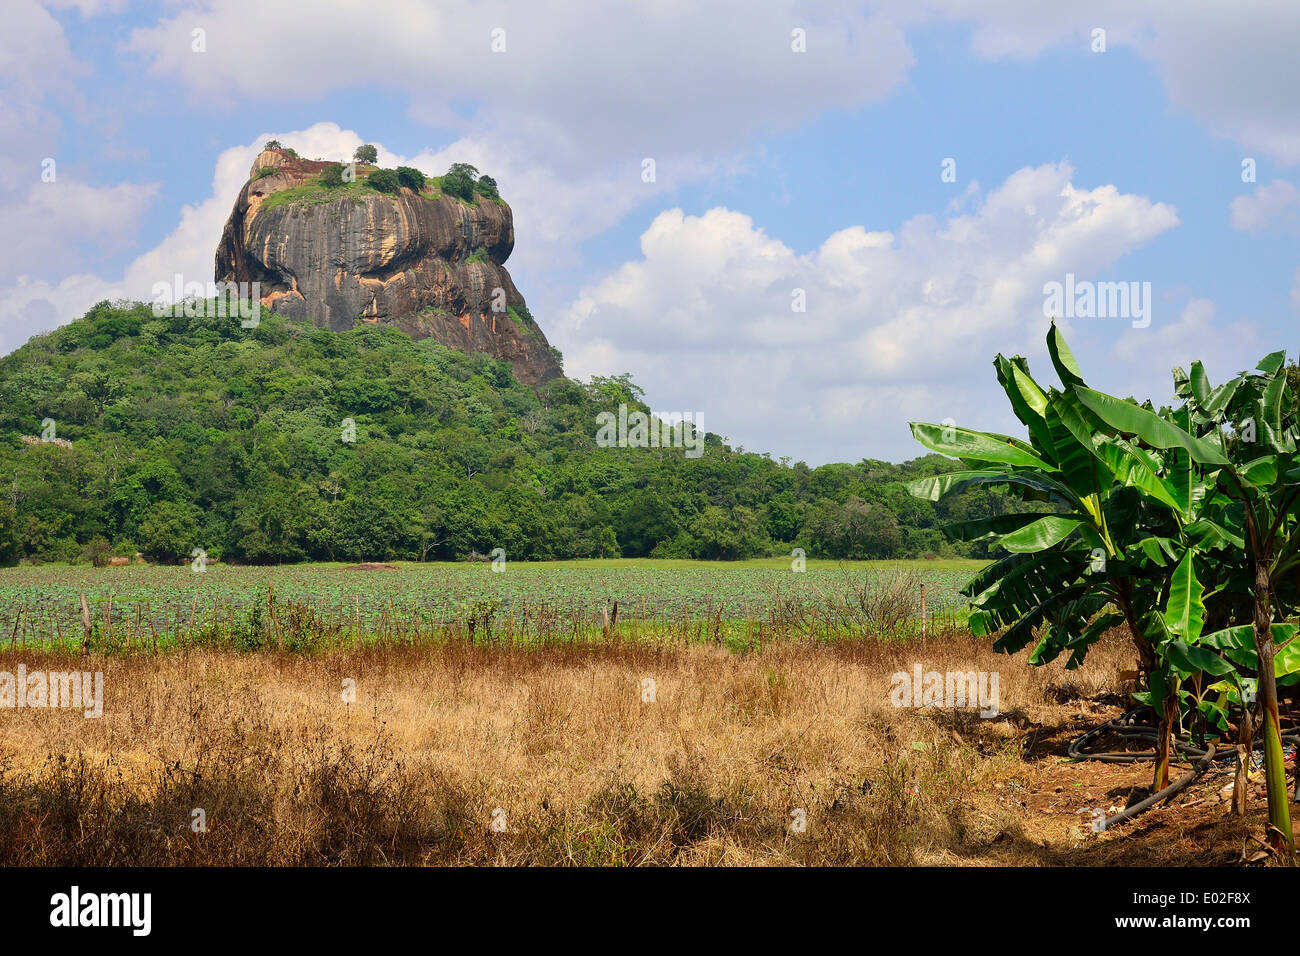 The Lion Rock, the magma block of an eroded volcano, with the ruins of a fortress, UNESCO World Heritage Site, Sigiriya - Stock Image